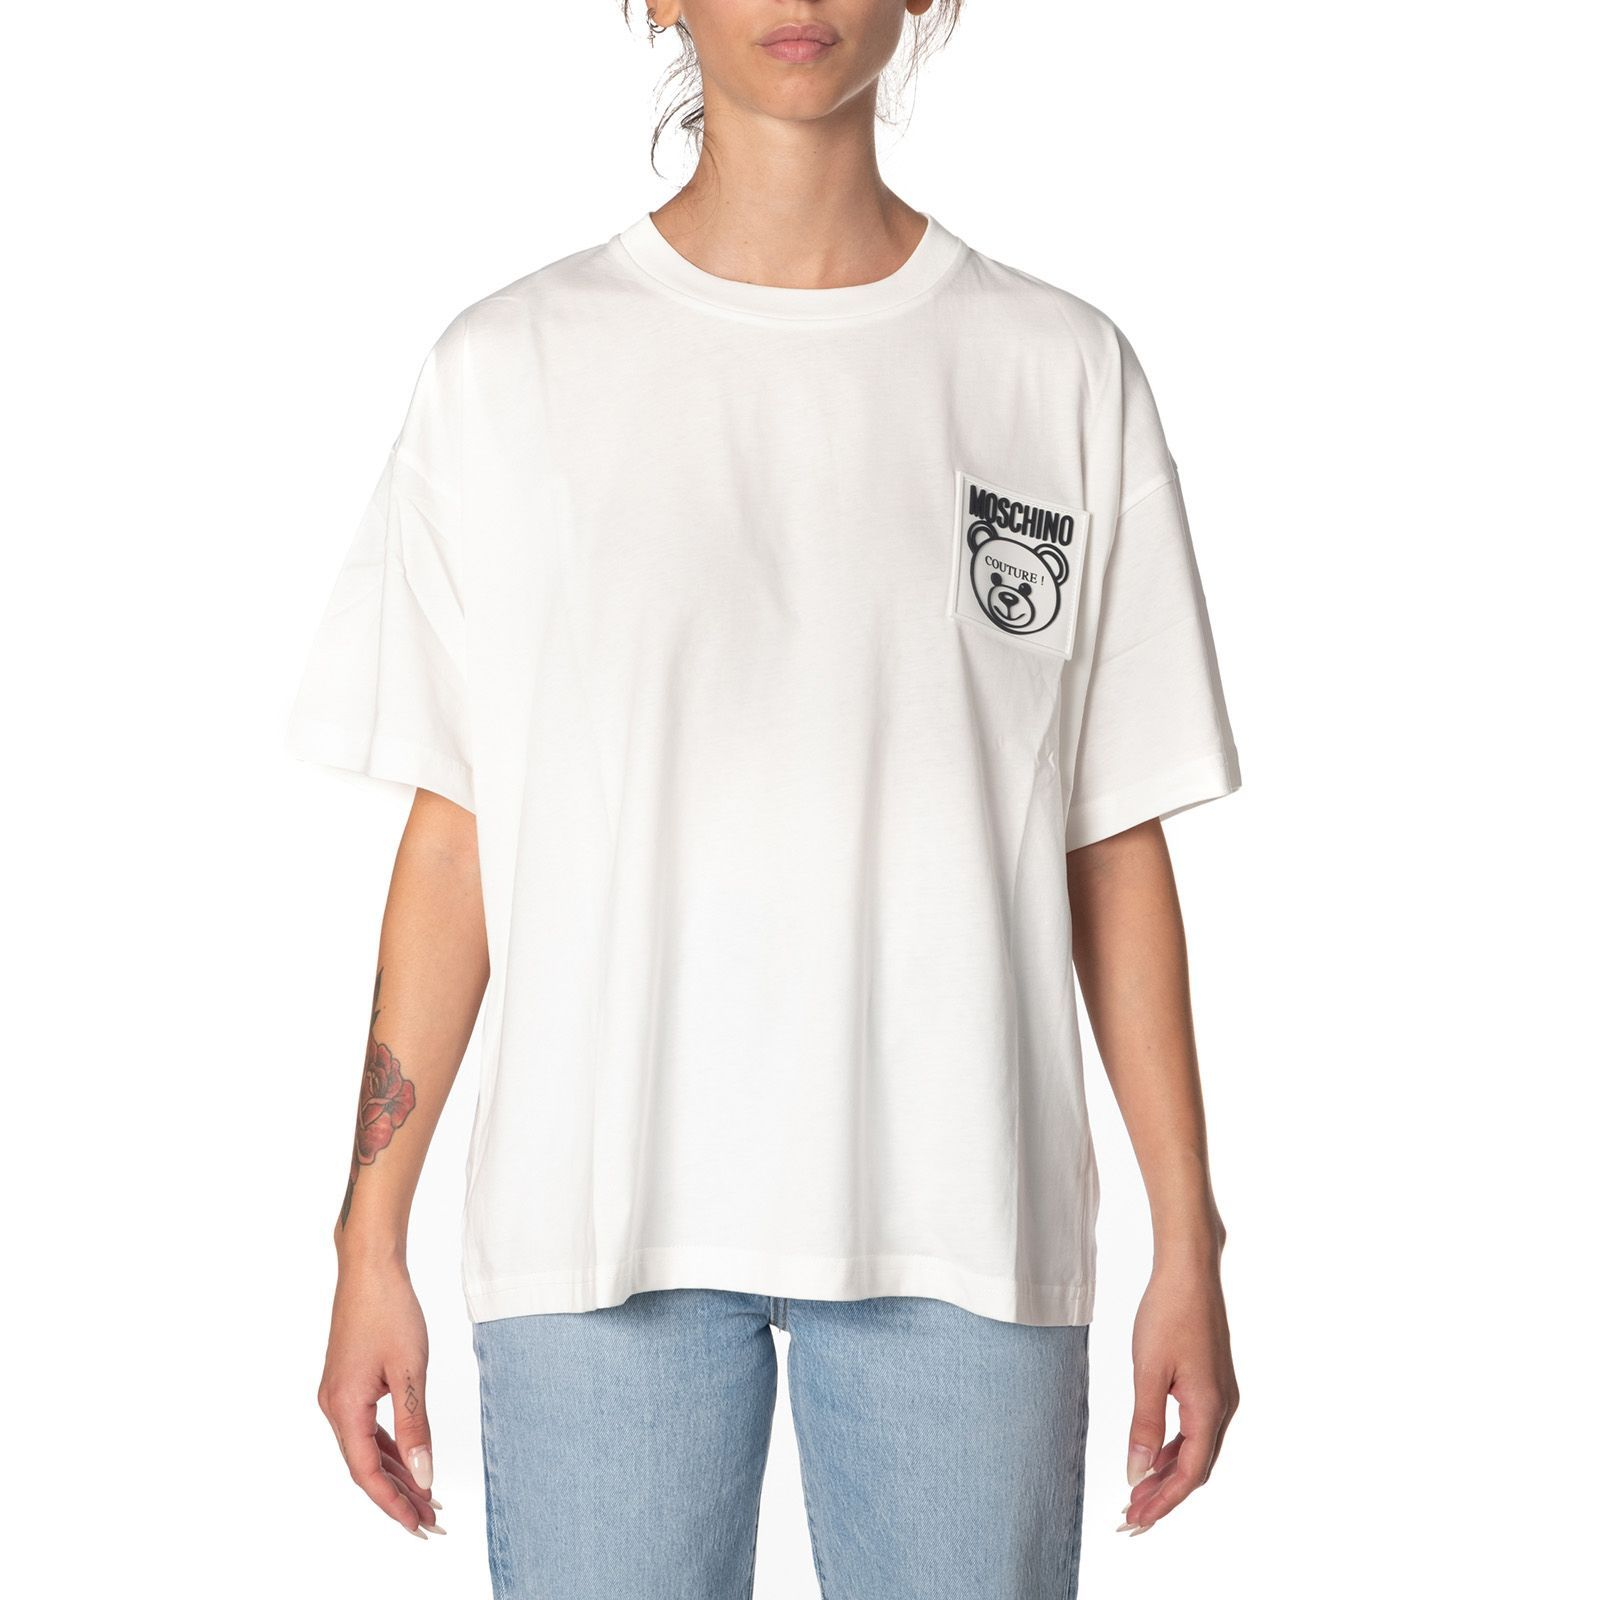 MOSCHINO WOMEN'S A070454400002 WHITE COTTON T-SHIRT